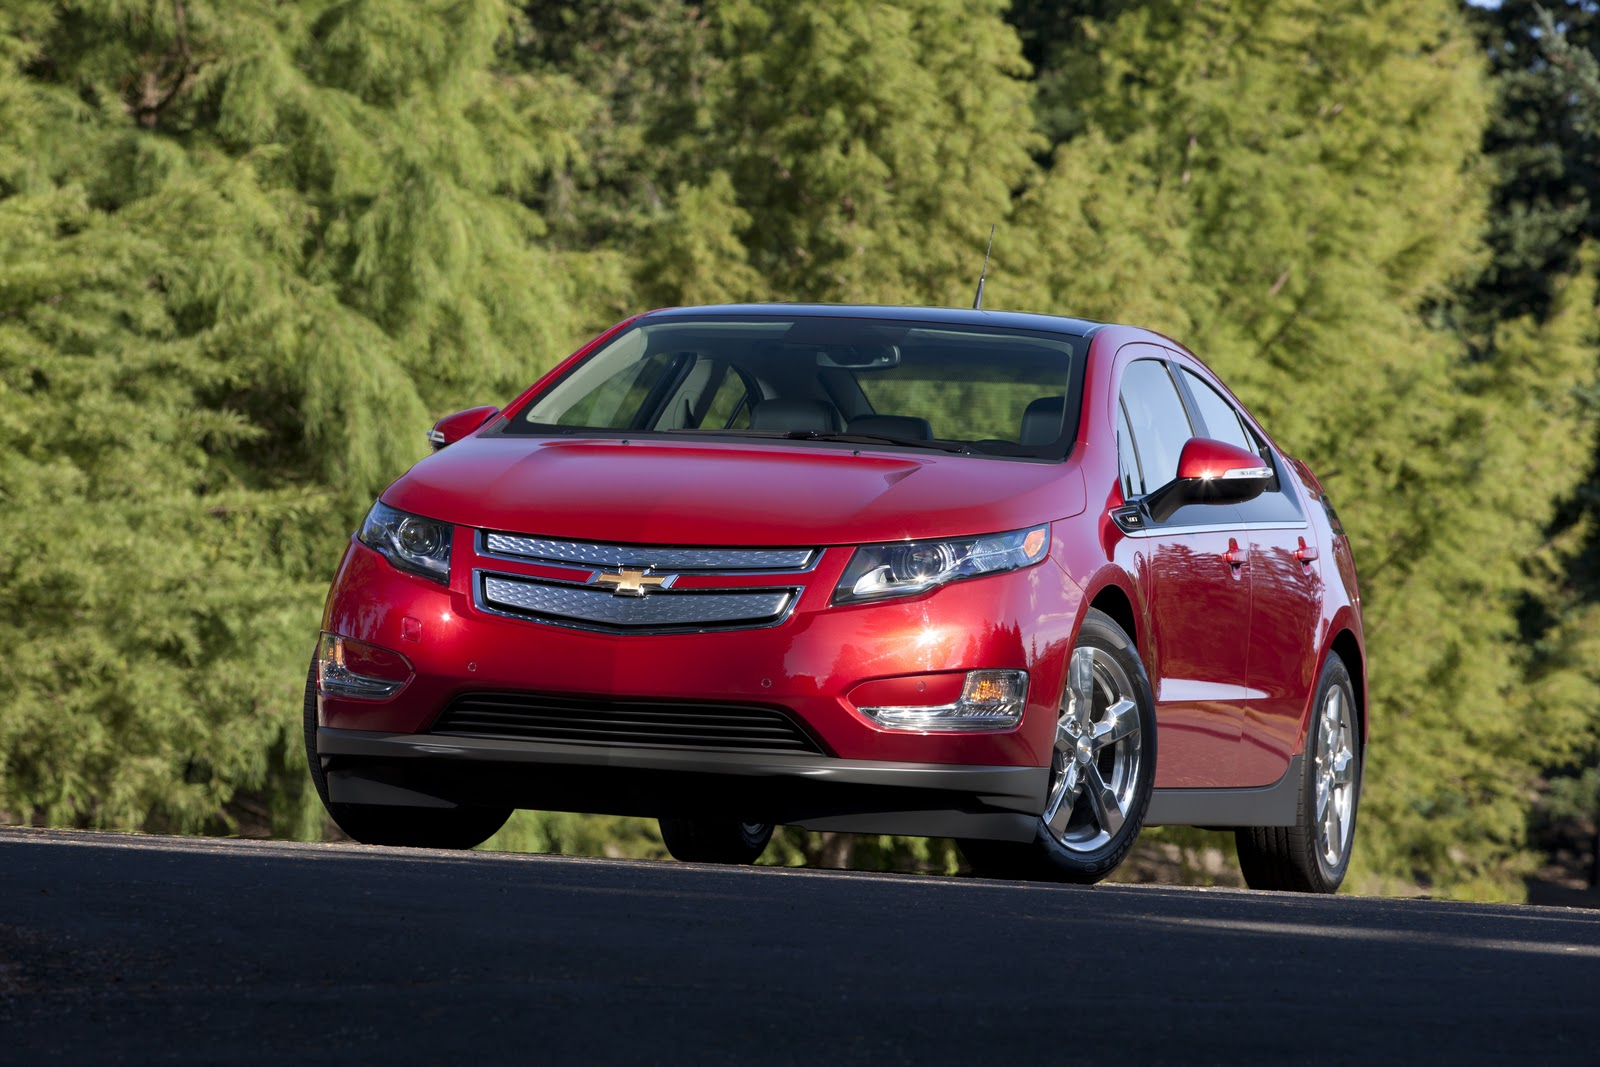 General motors officially launch the 2011 chevrolet volt